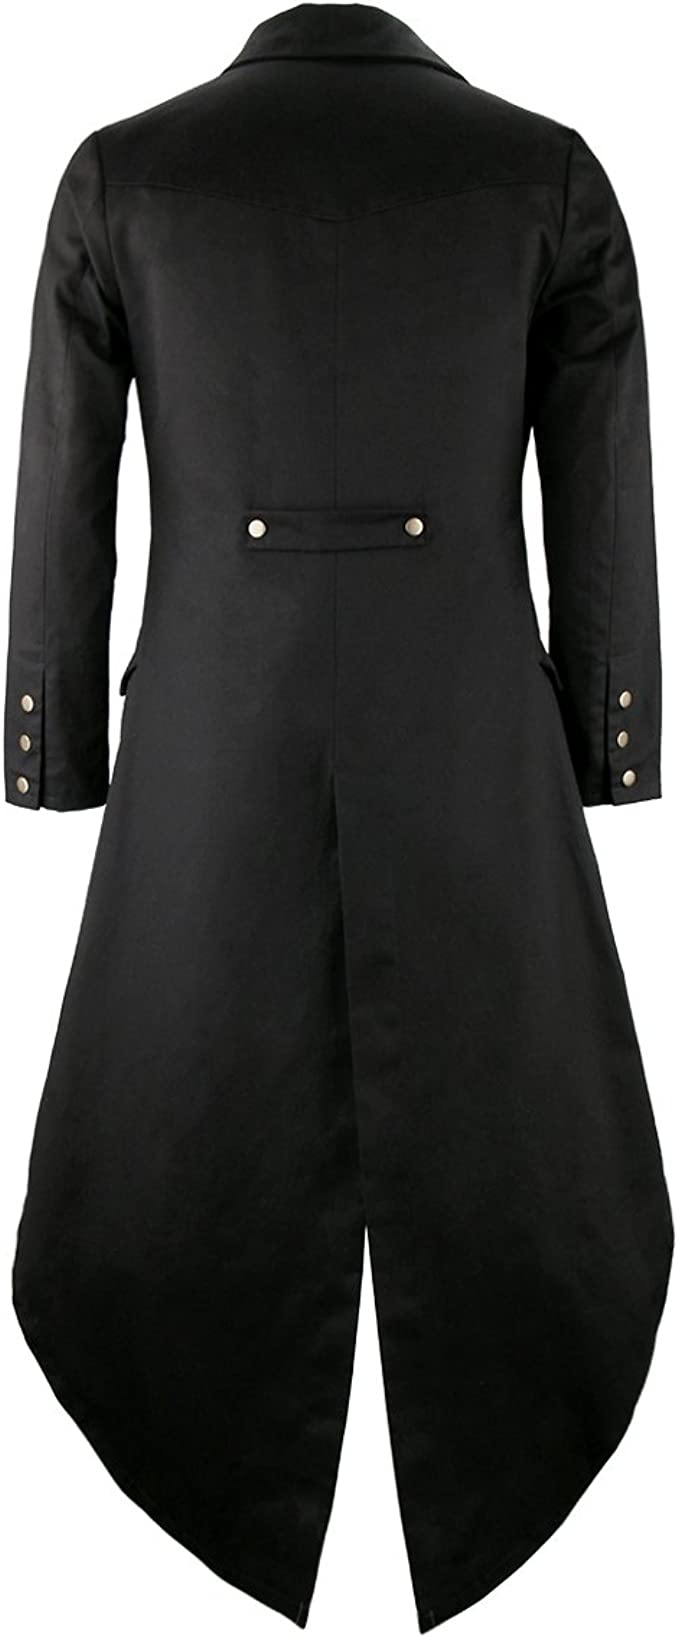 Size: Chest 42`-44`, .. COST-M NEW Black with Collar - Gothic Vampire Jacket